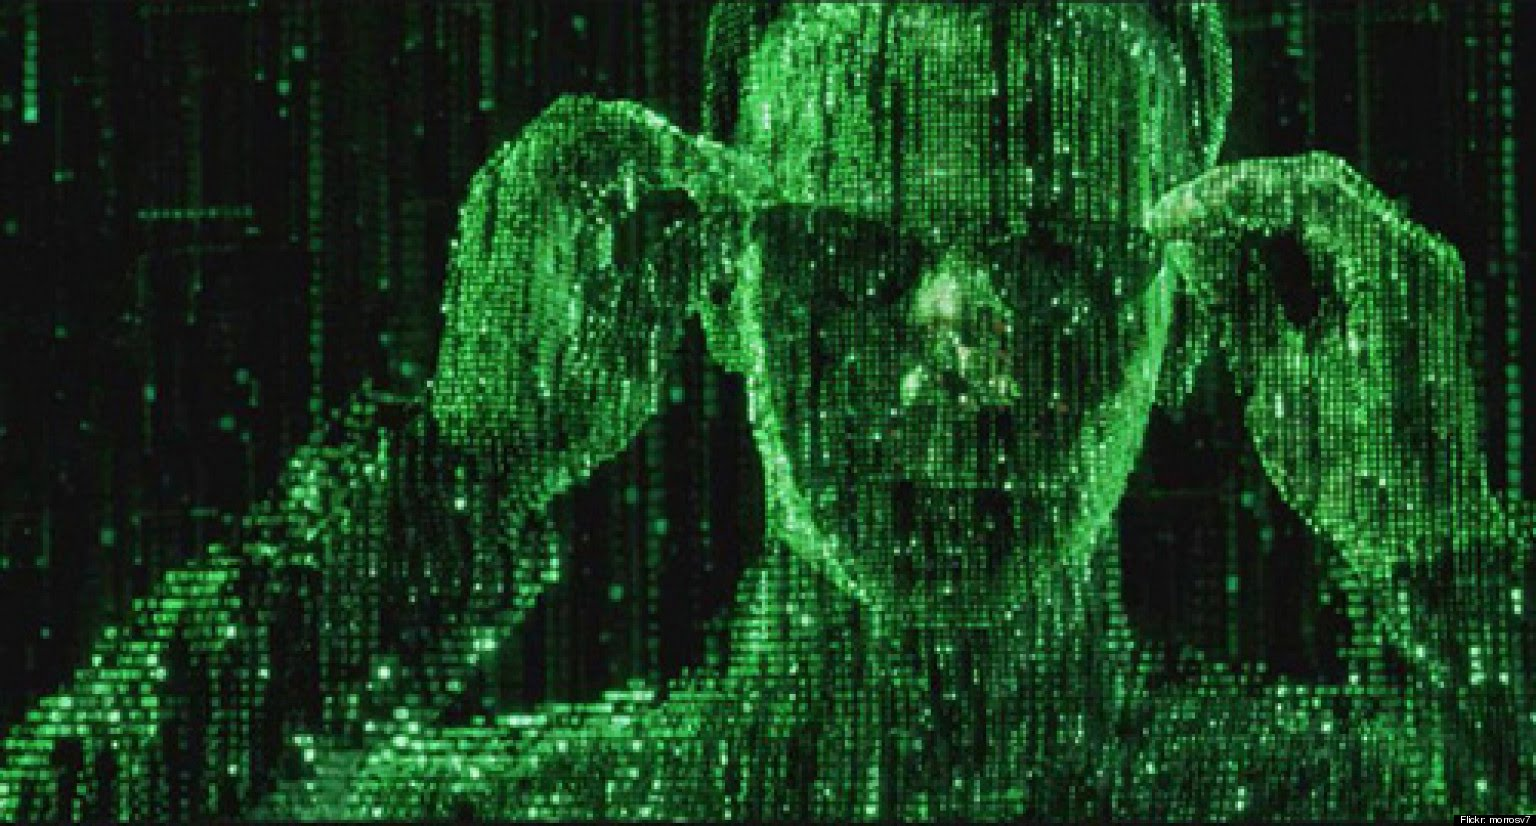 I can see the code in the Matrix